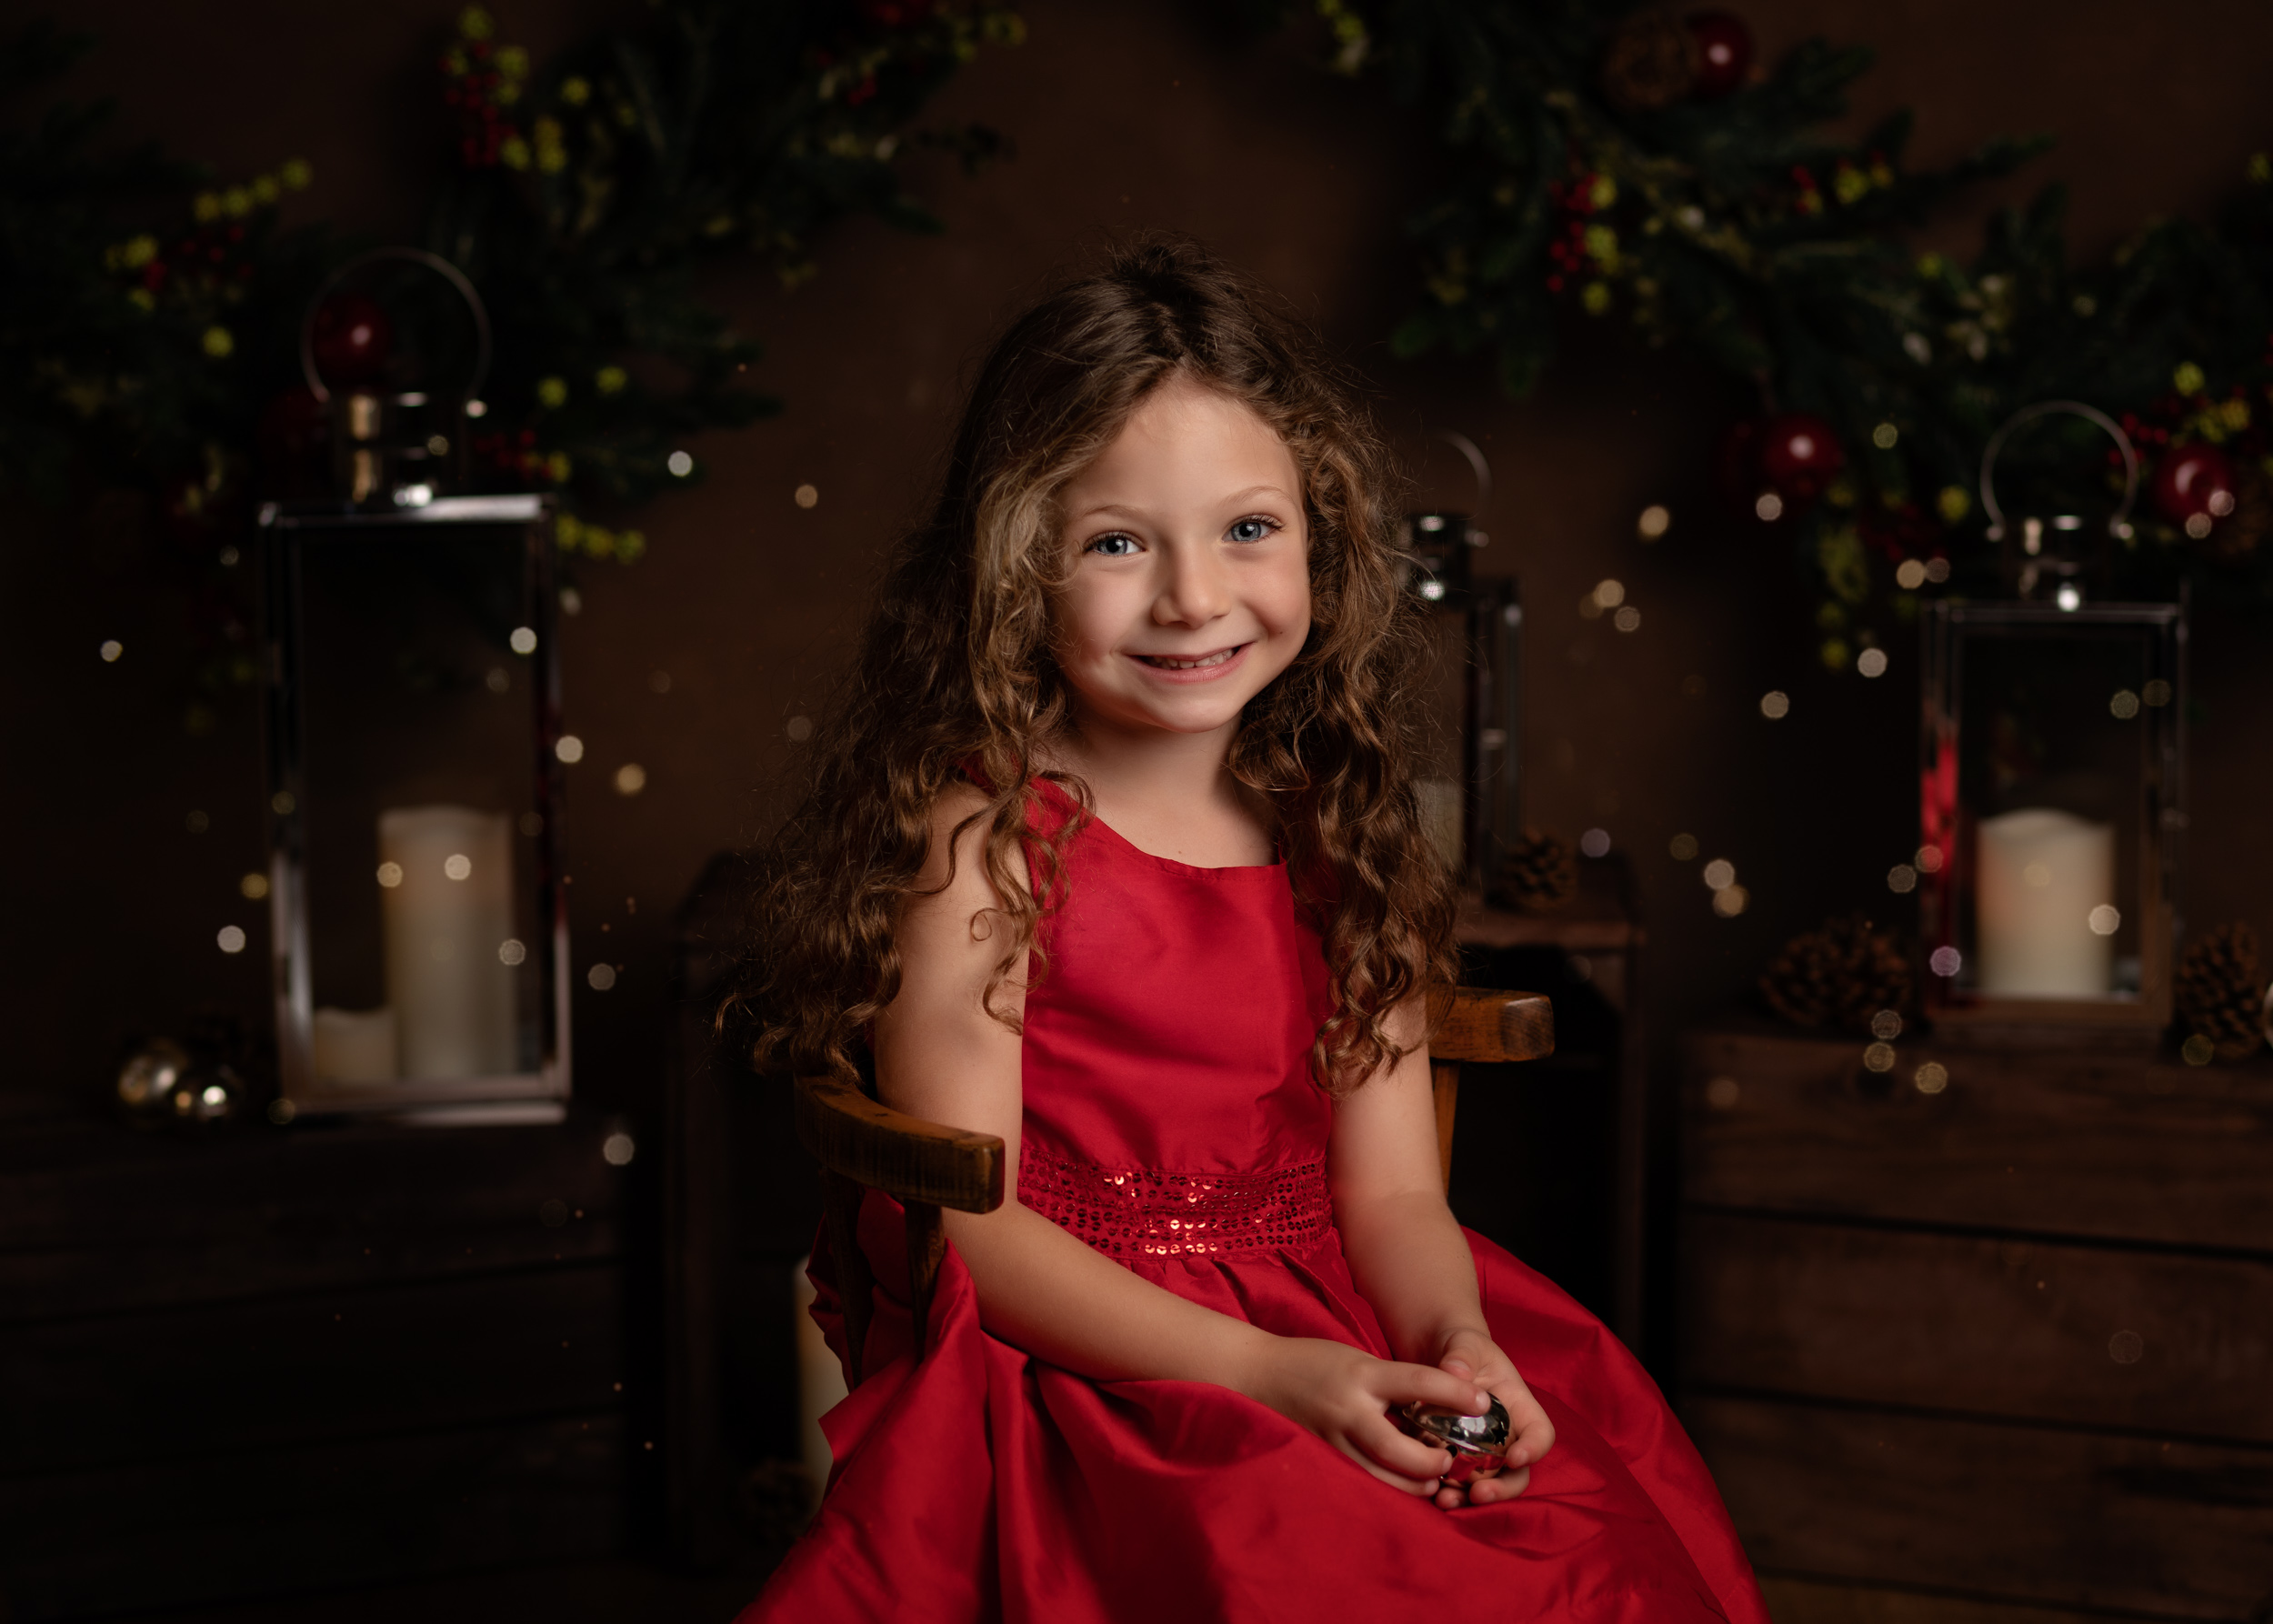 Little girl in a red dress posing for her Christmas Mini Session photo shoot in Cheshire